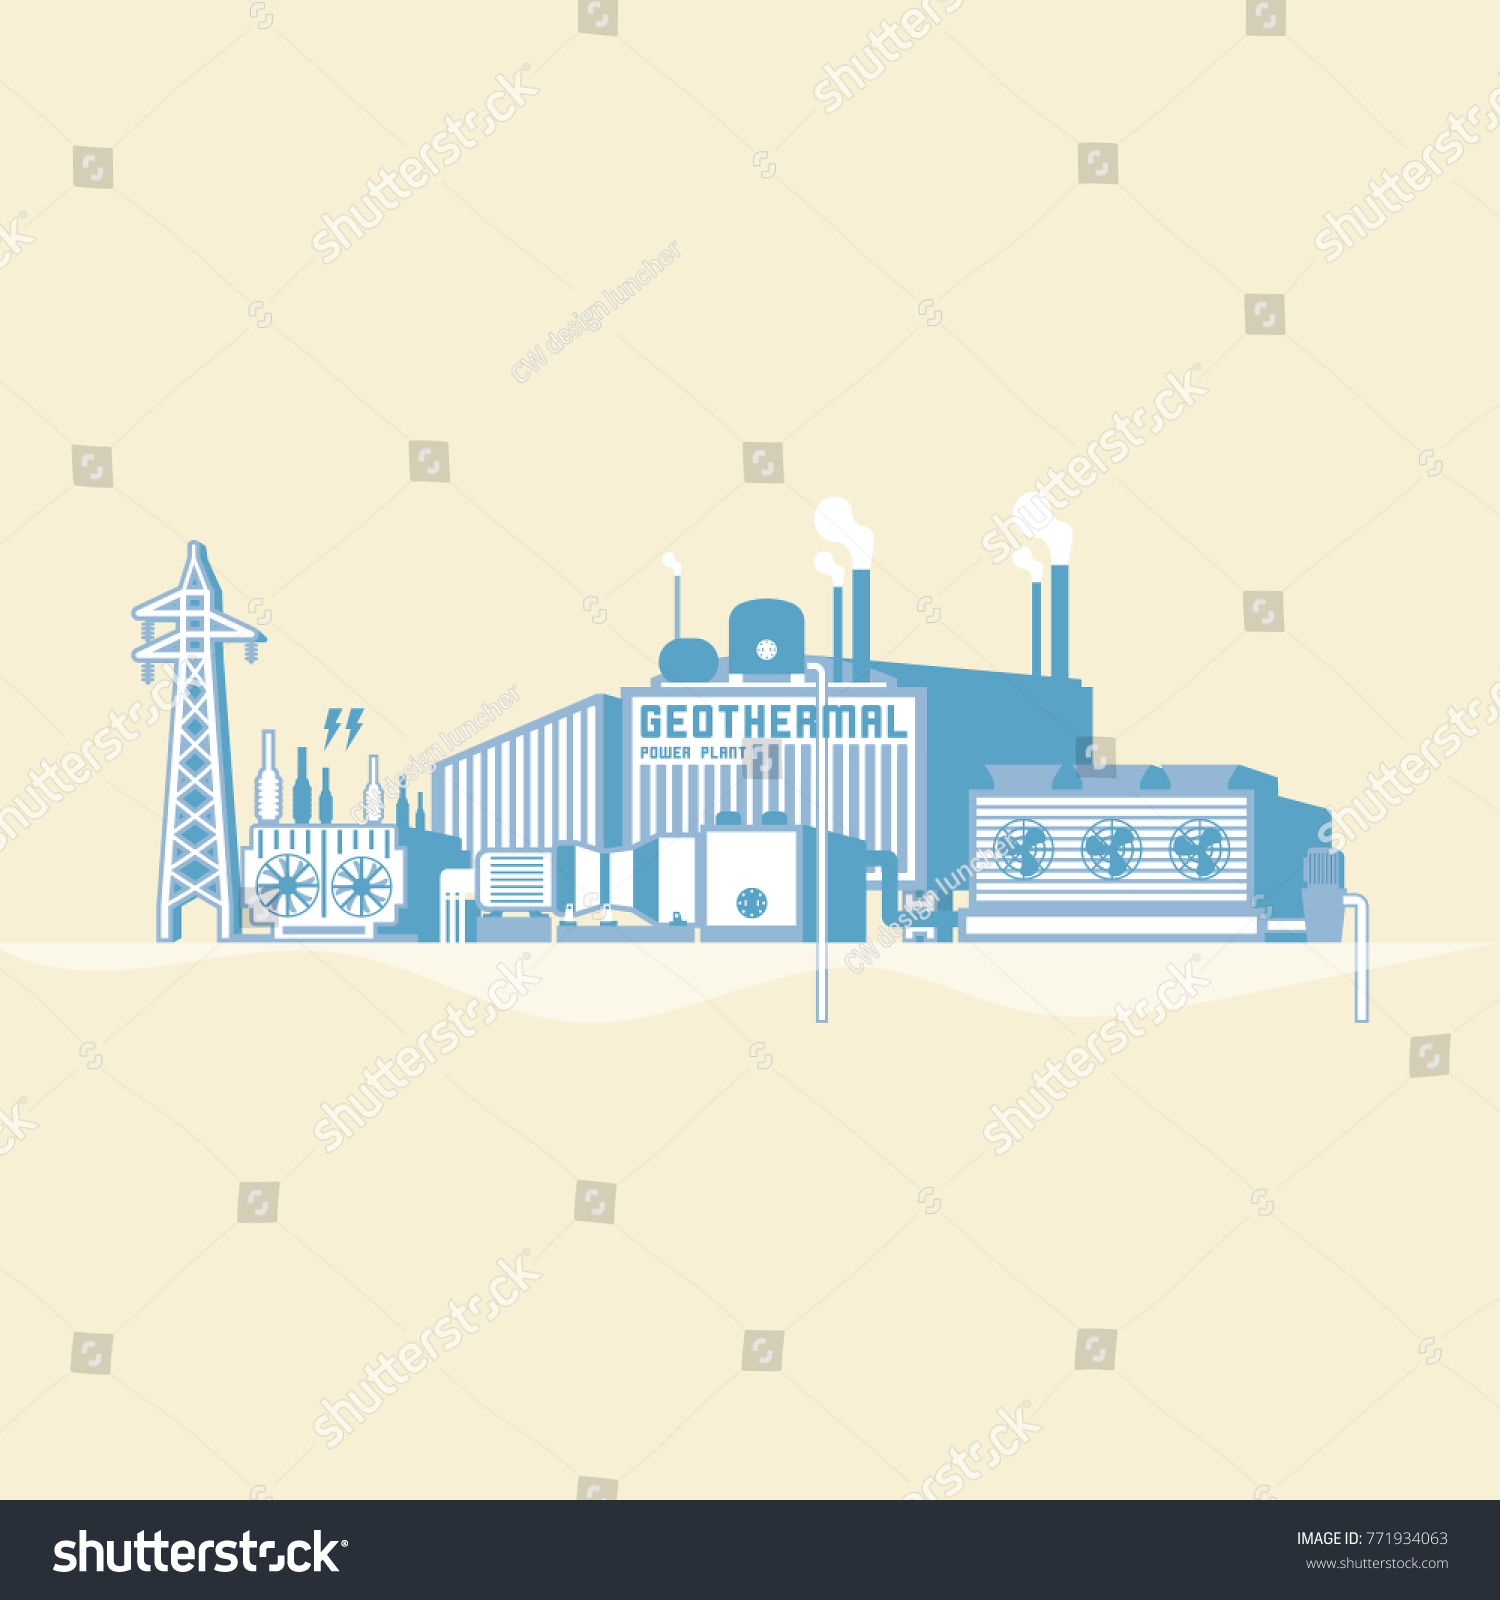 hight resolution of geothermal energy geothermal power plant with boiler and seam turbine generate the electric in simple